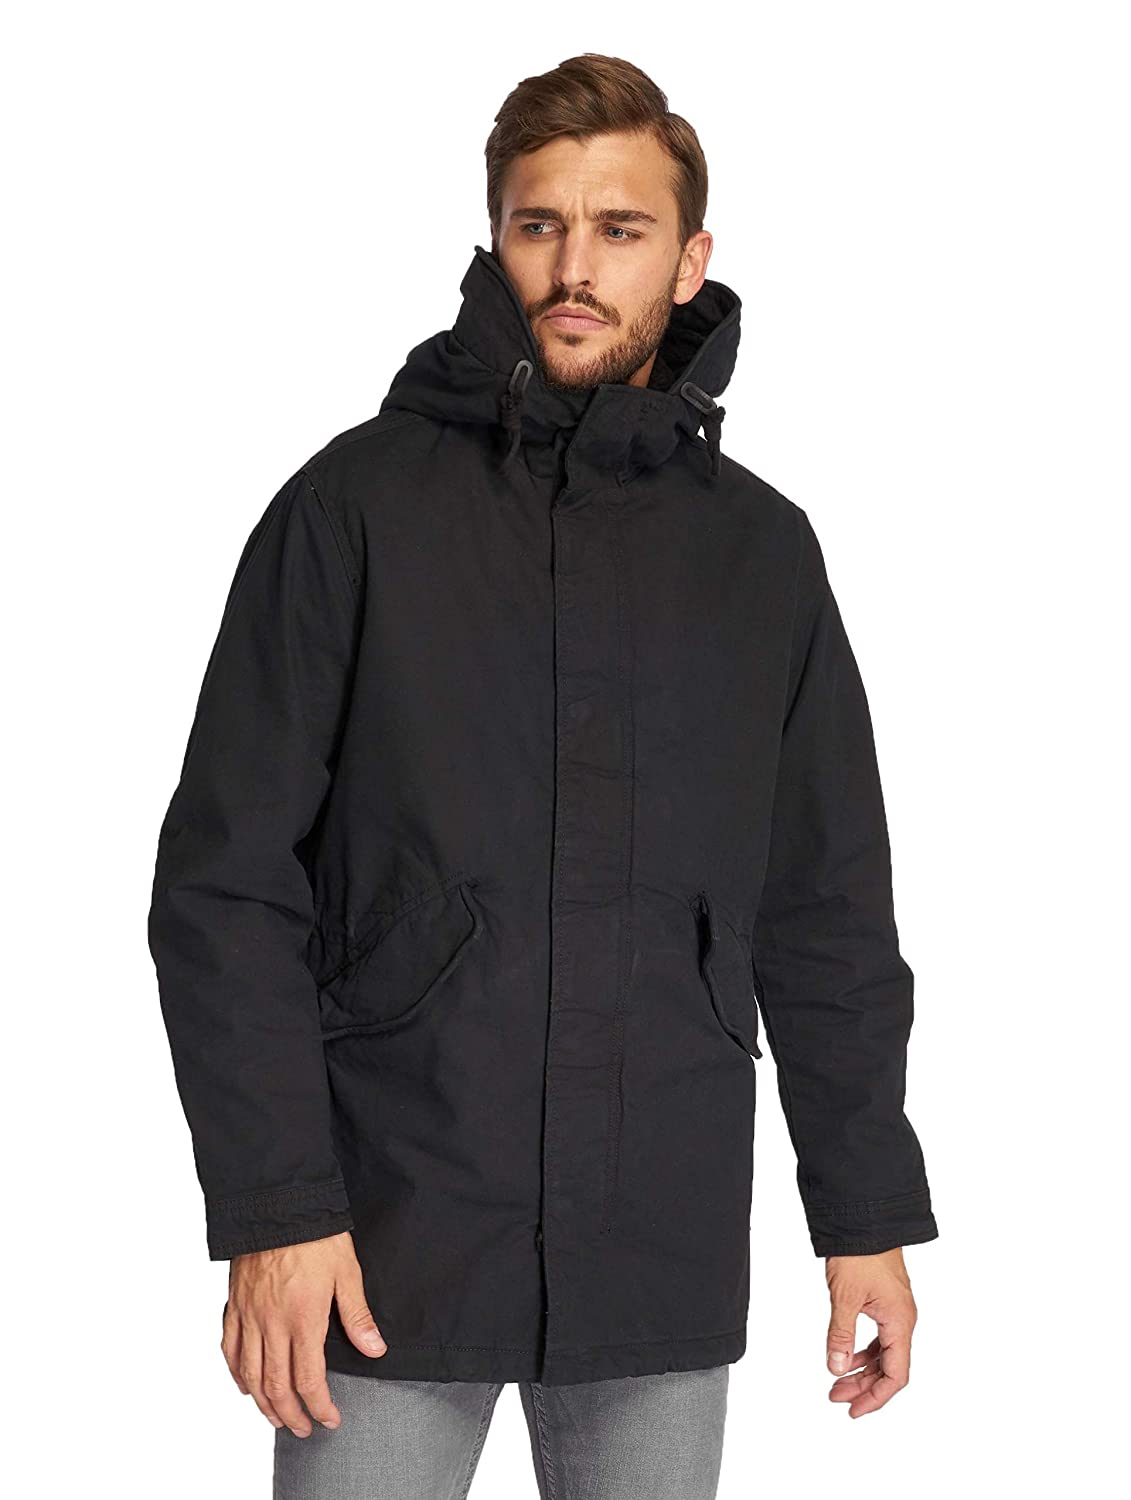 Jack & Jones Men's New Bento Parka Jacket, Black